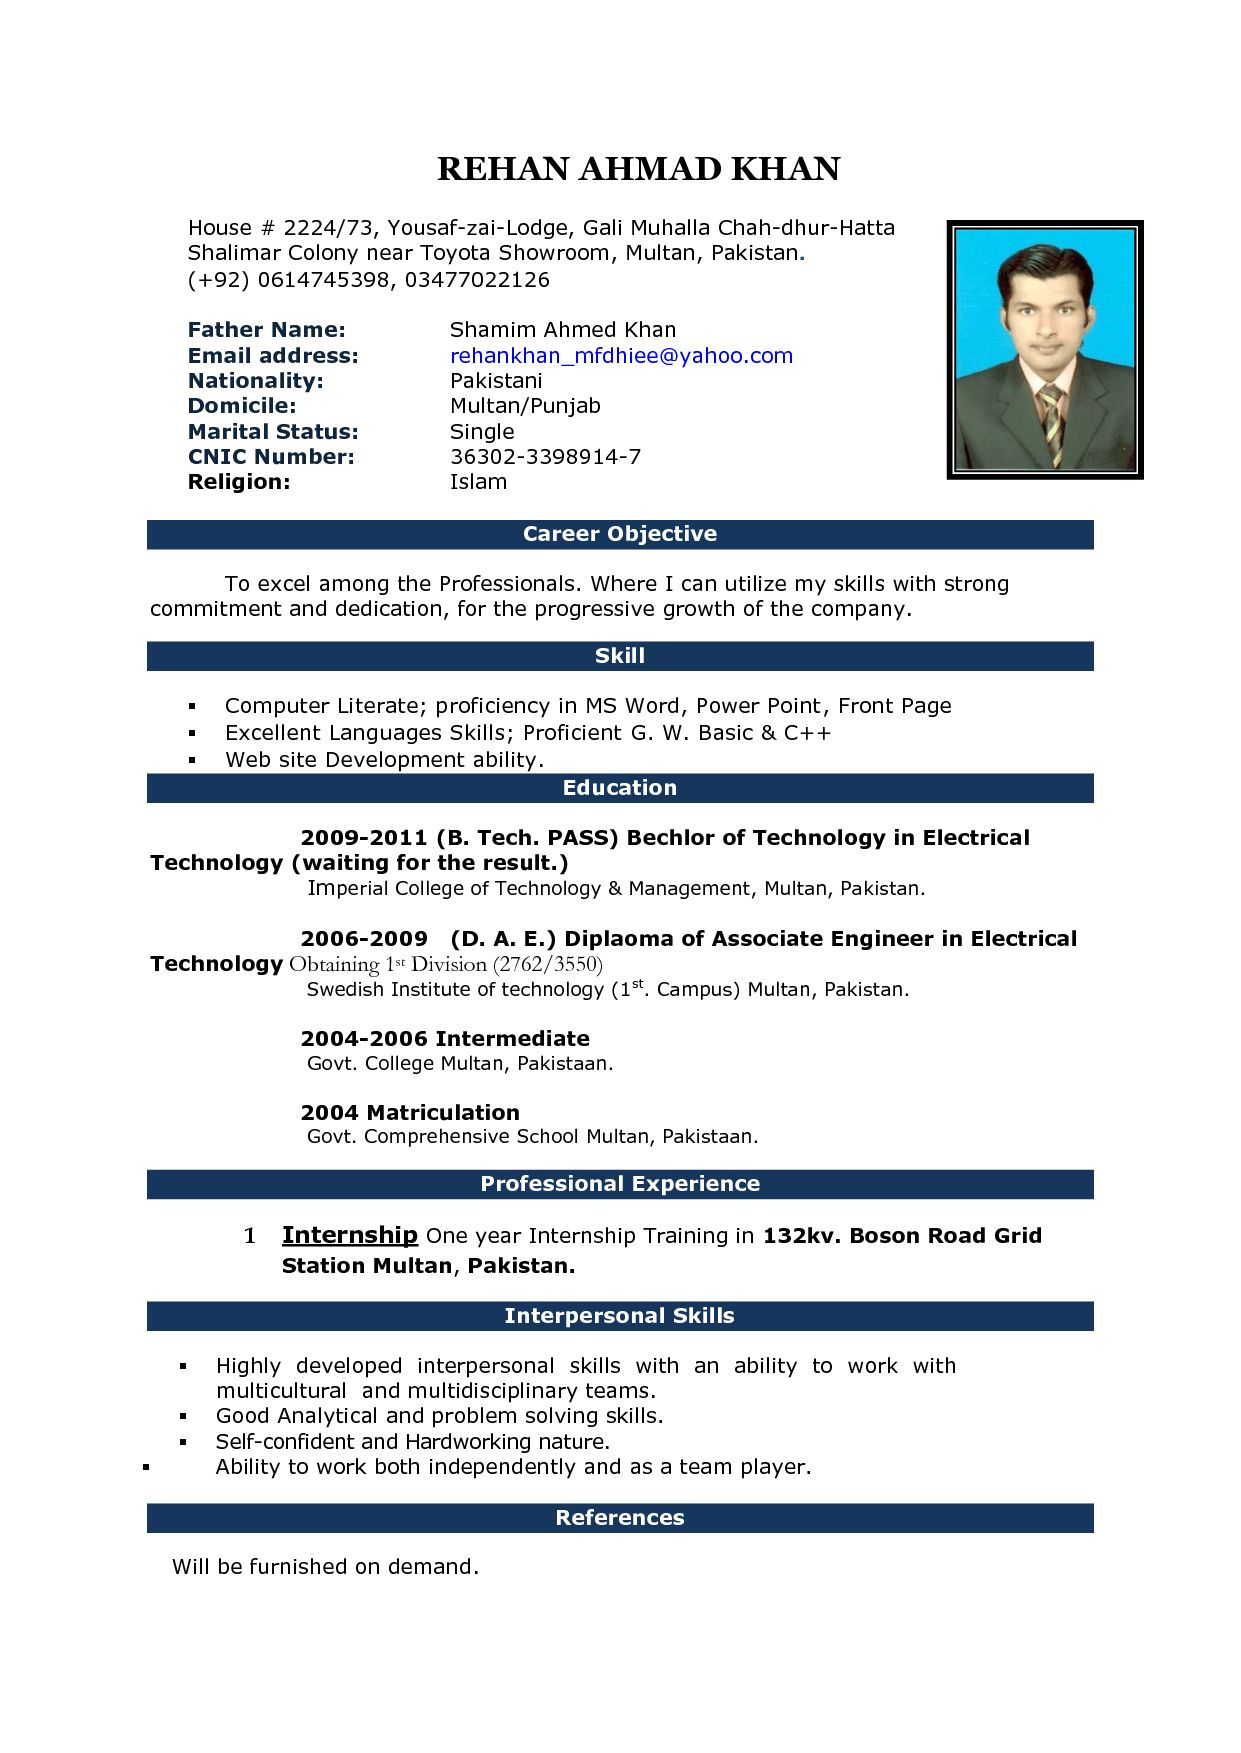 pin on cv student resume format word file python automation developer personal trainer Resume Student Resume Format Word File